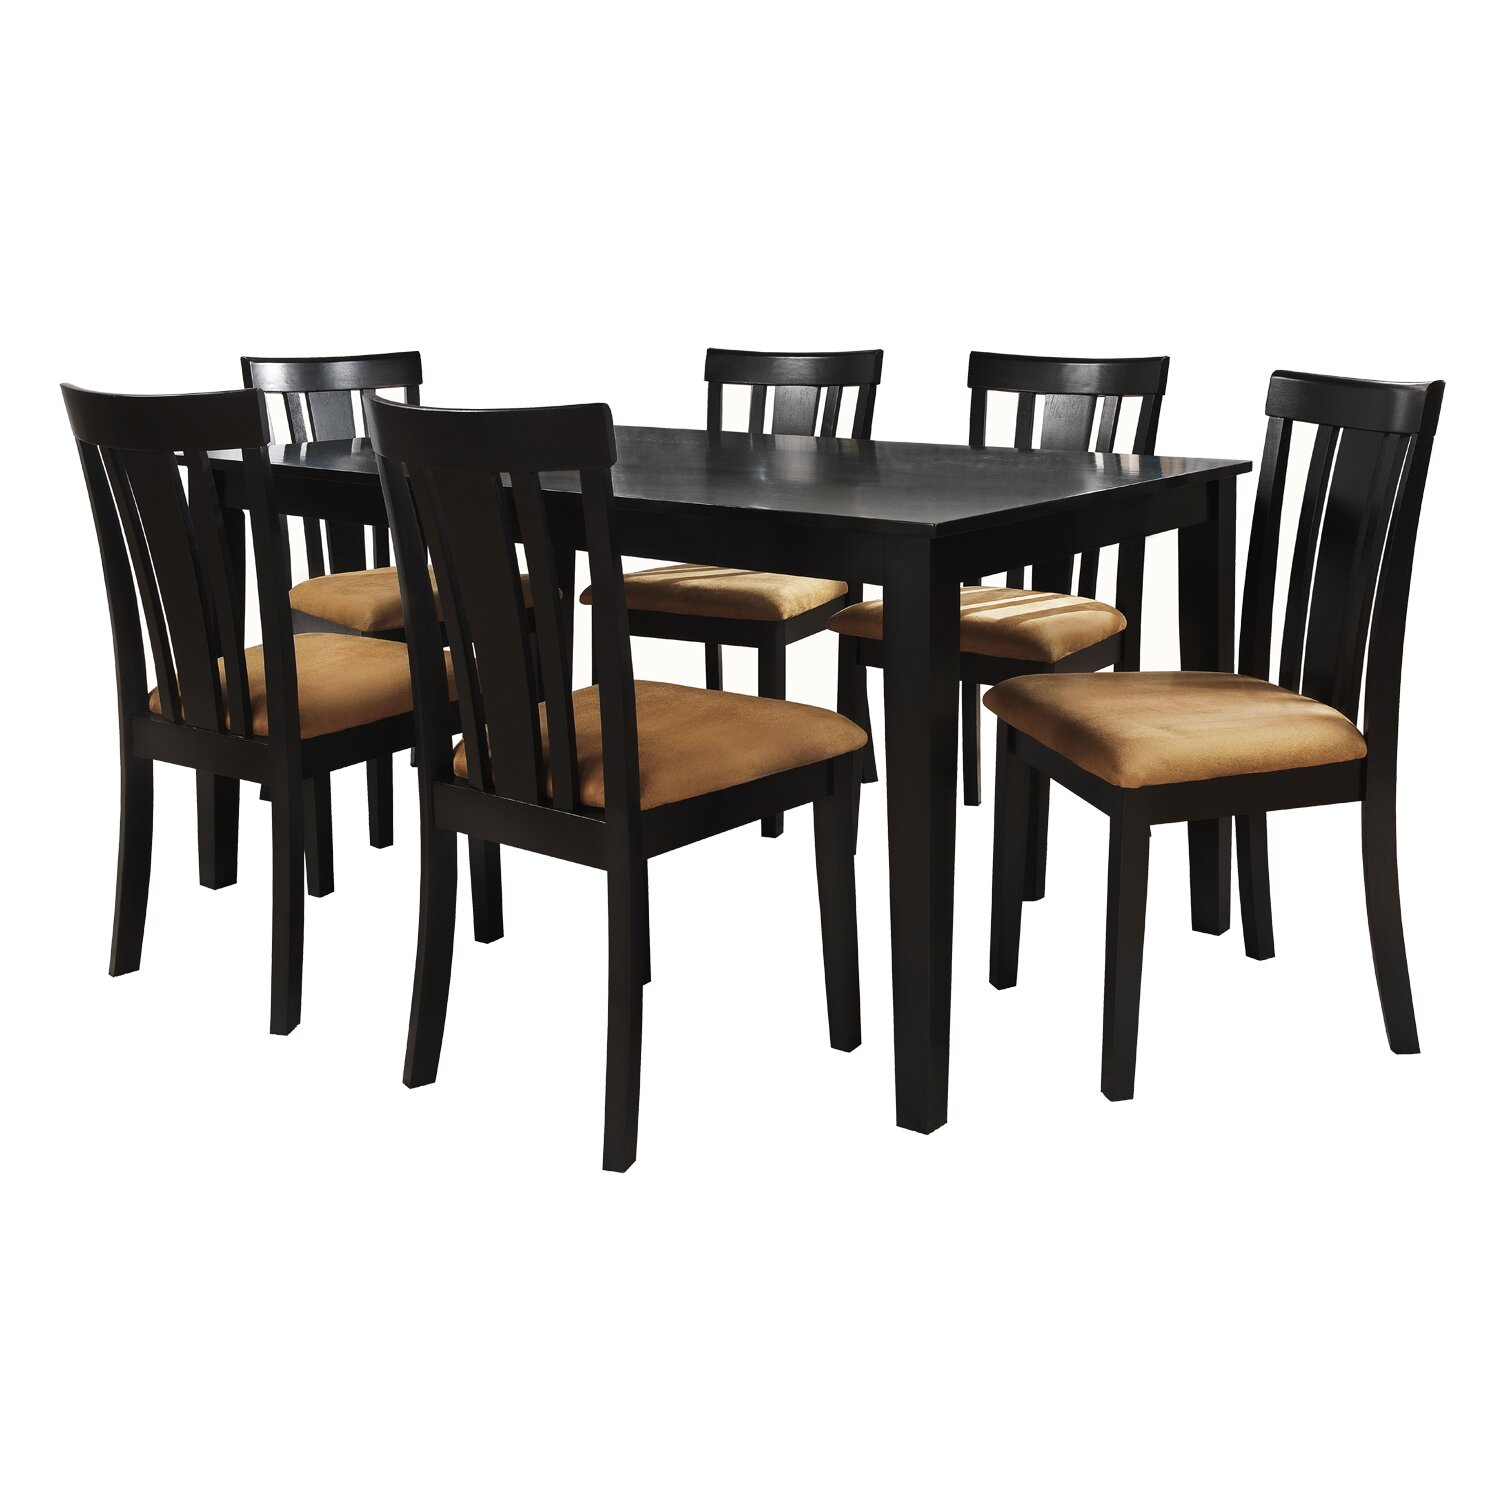 Kingstown home jeannette 7 piece dining set reviews for Furniture 7 credit reviews